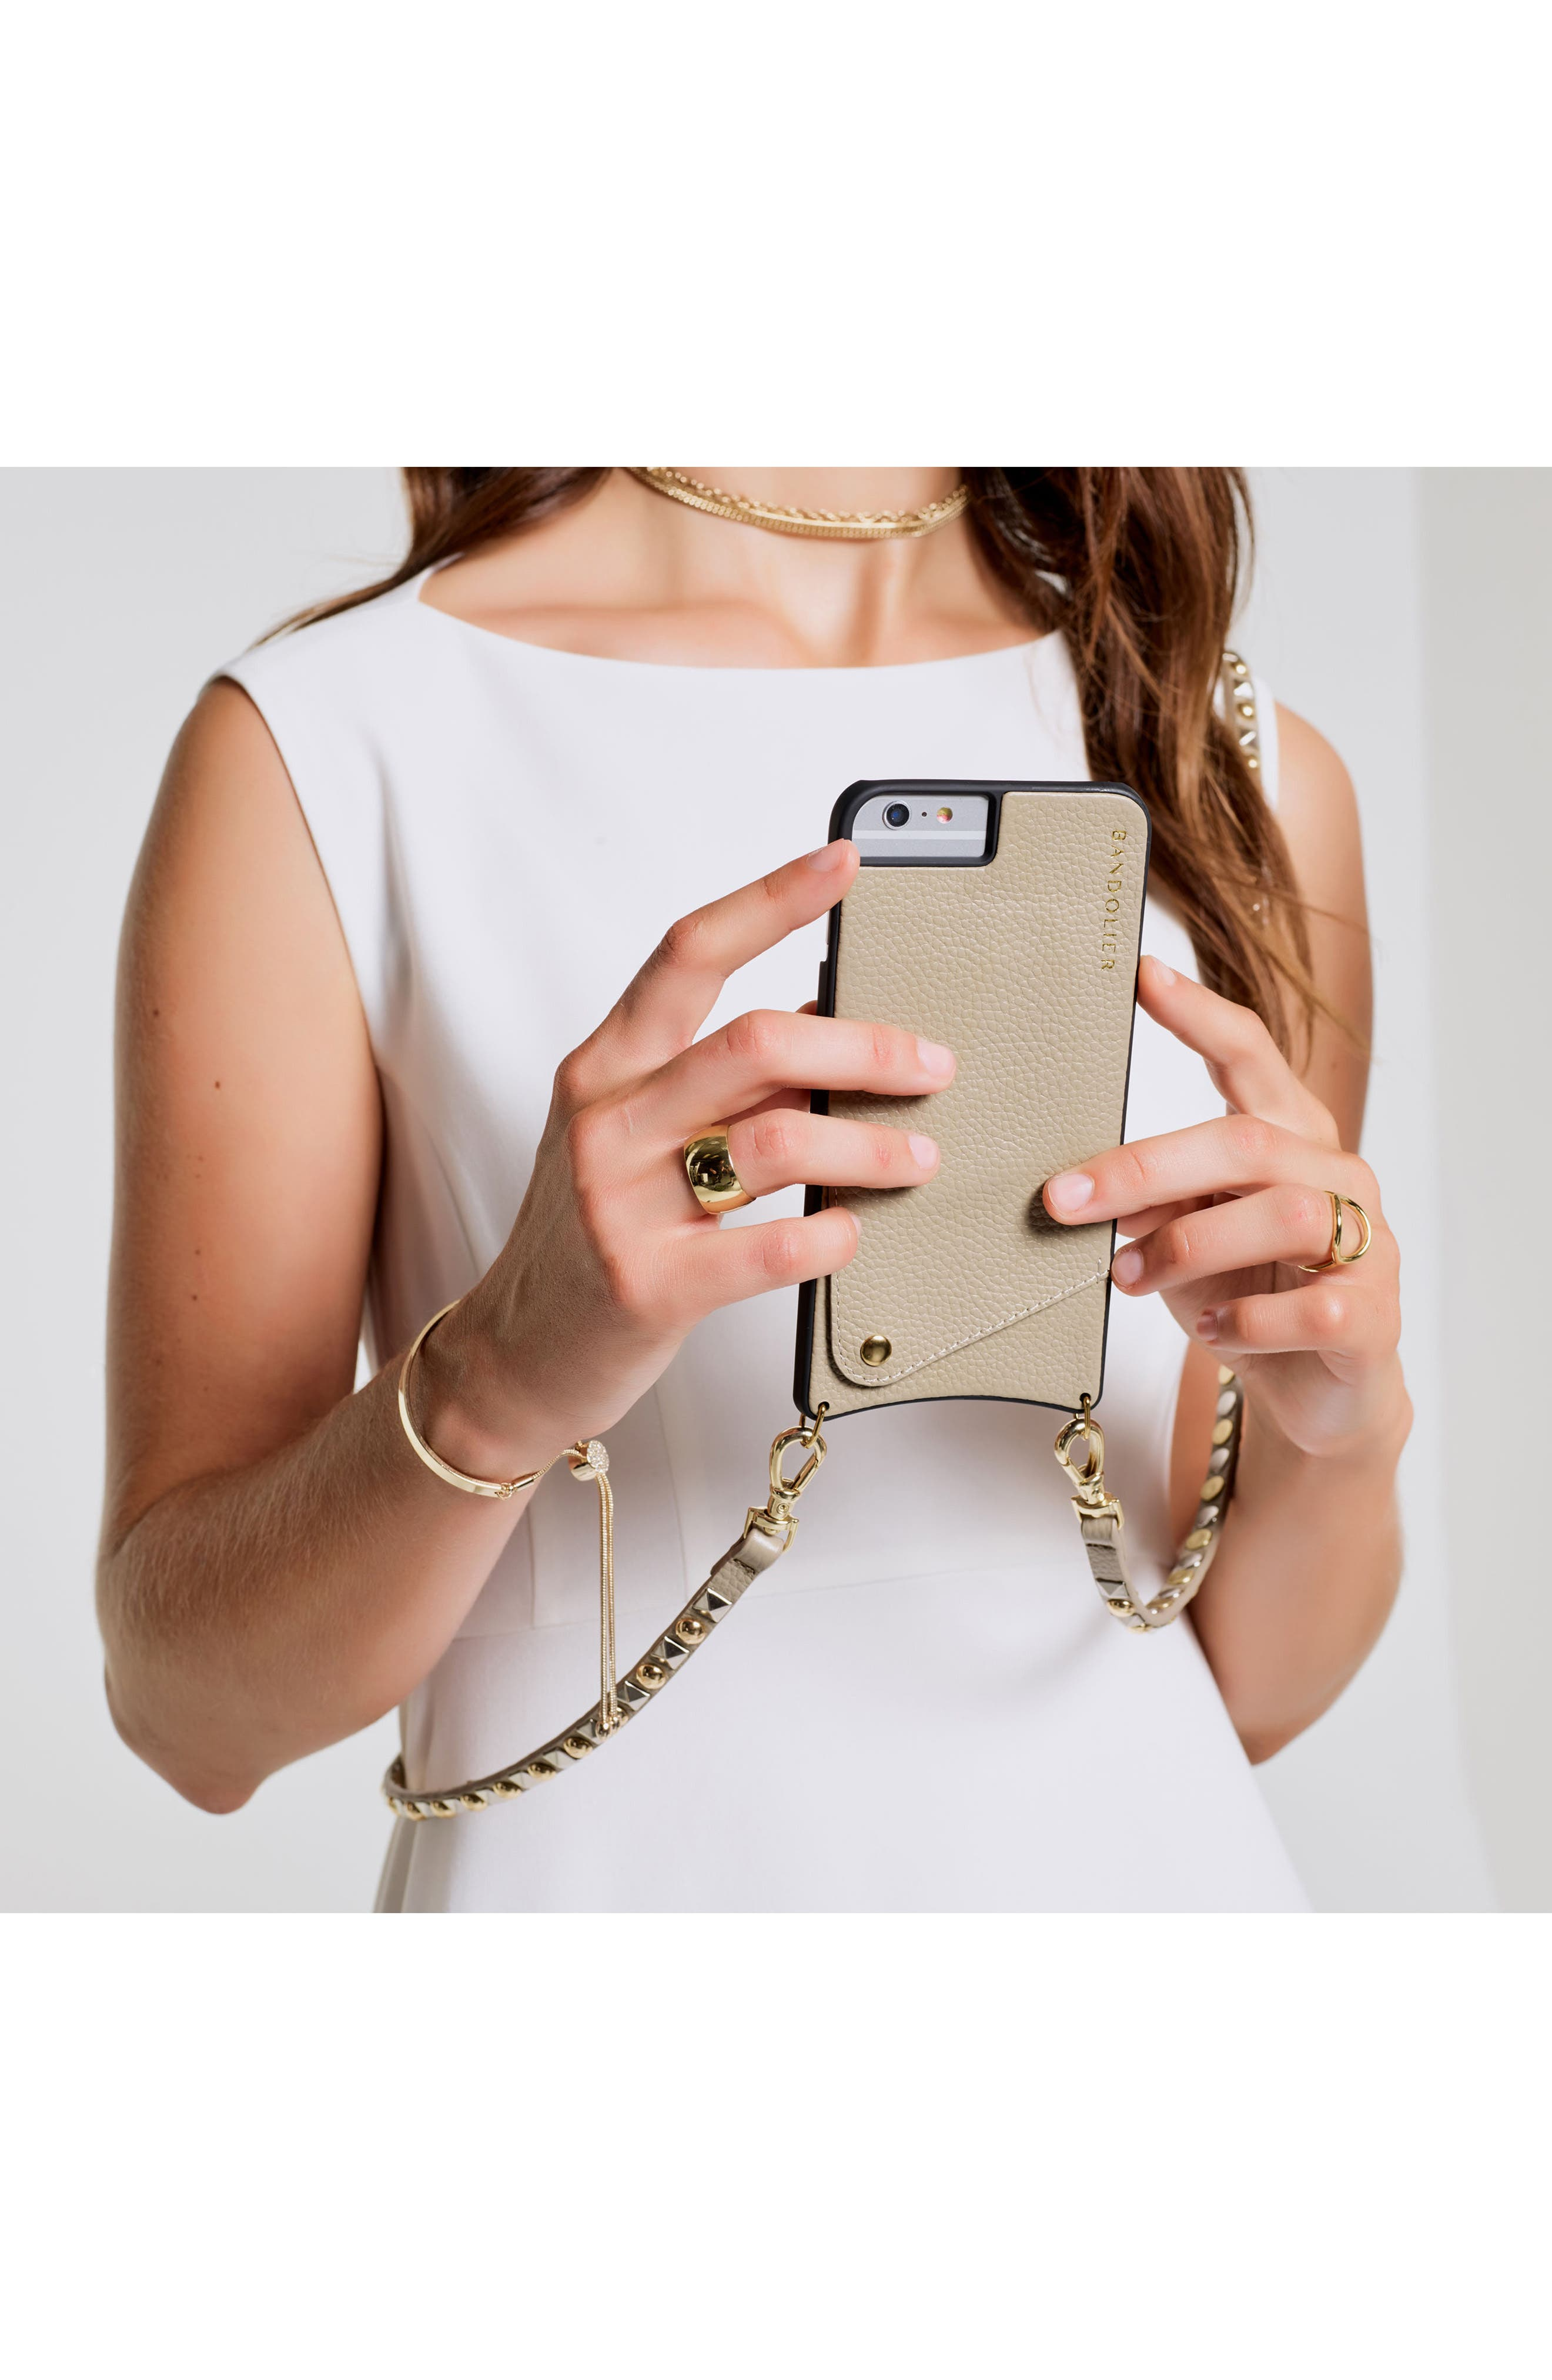 Stella iPhone 6/7/8 & 6/7/8 Plus Leather Crossbody Case,                             Alternate thumbnail 7, color,                             Pebble/ Gold/ Silver